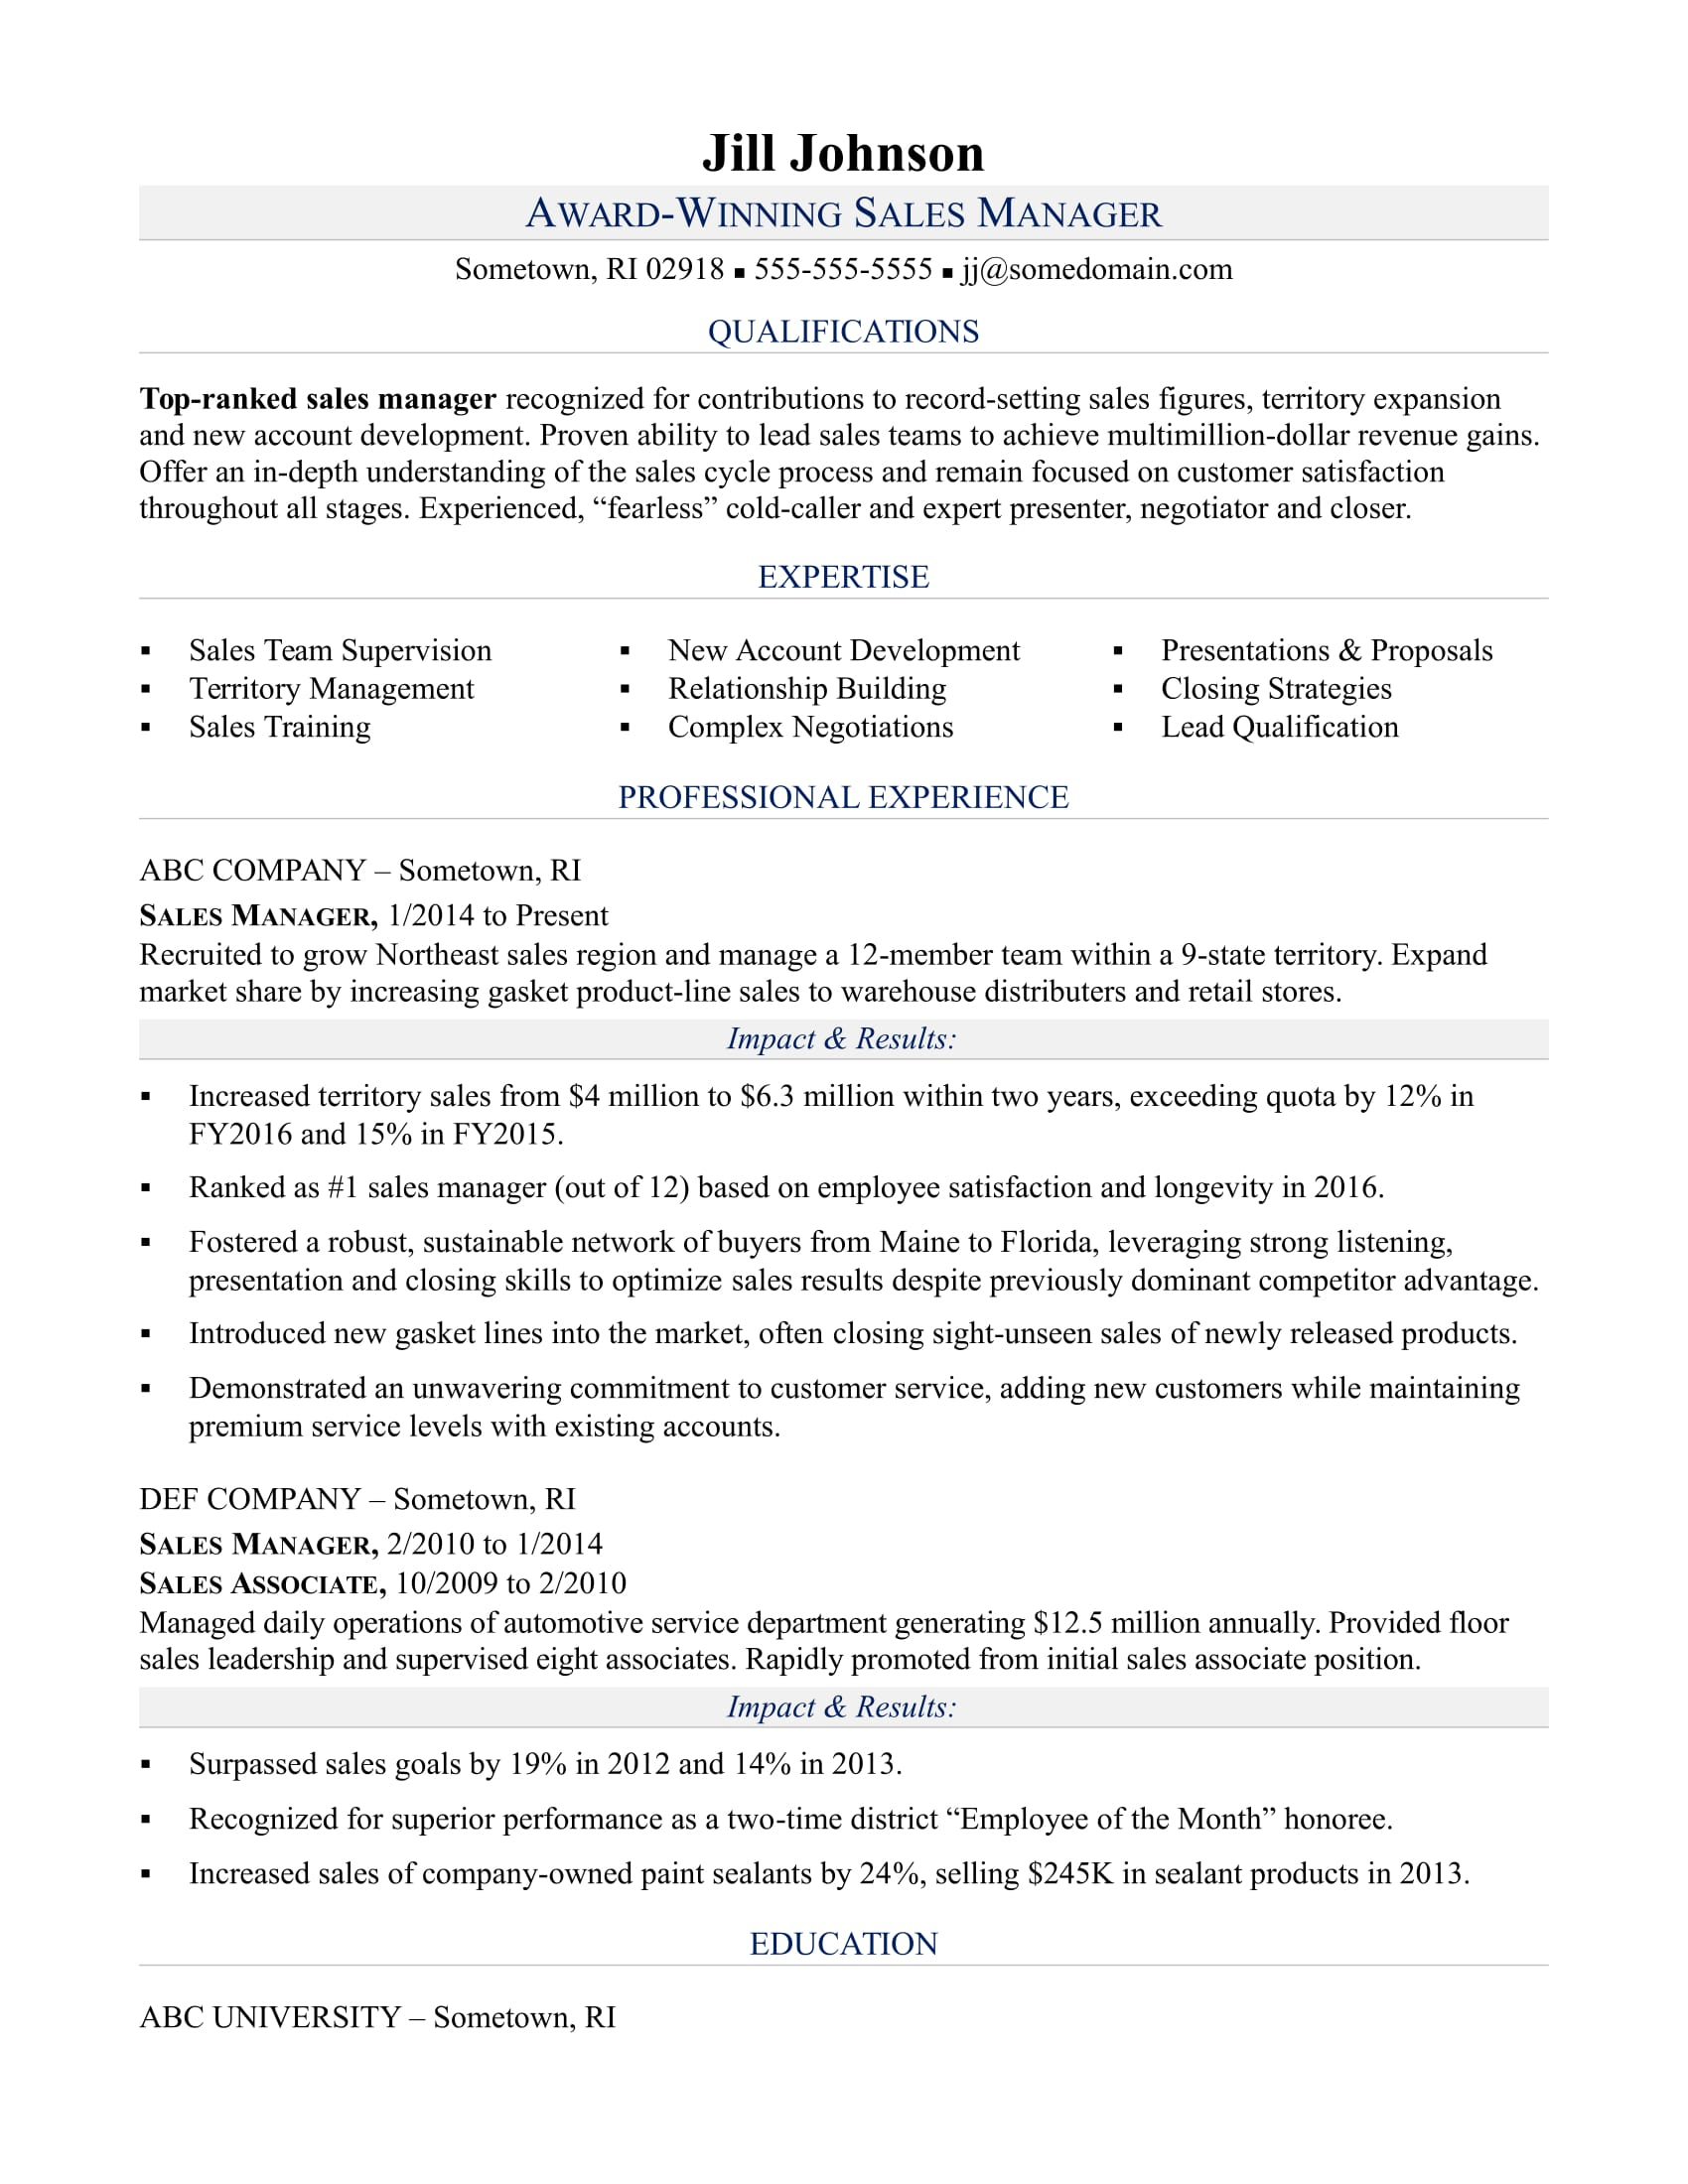 sample resume for a sales manager - Sustainability Officer Sample Resume